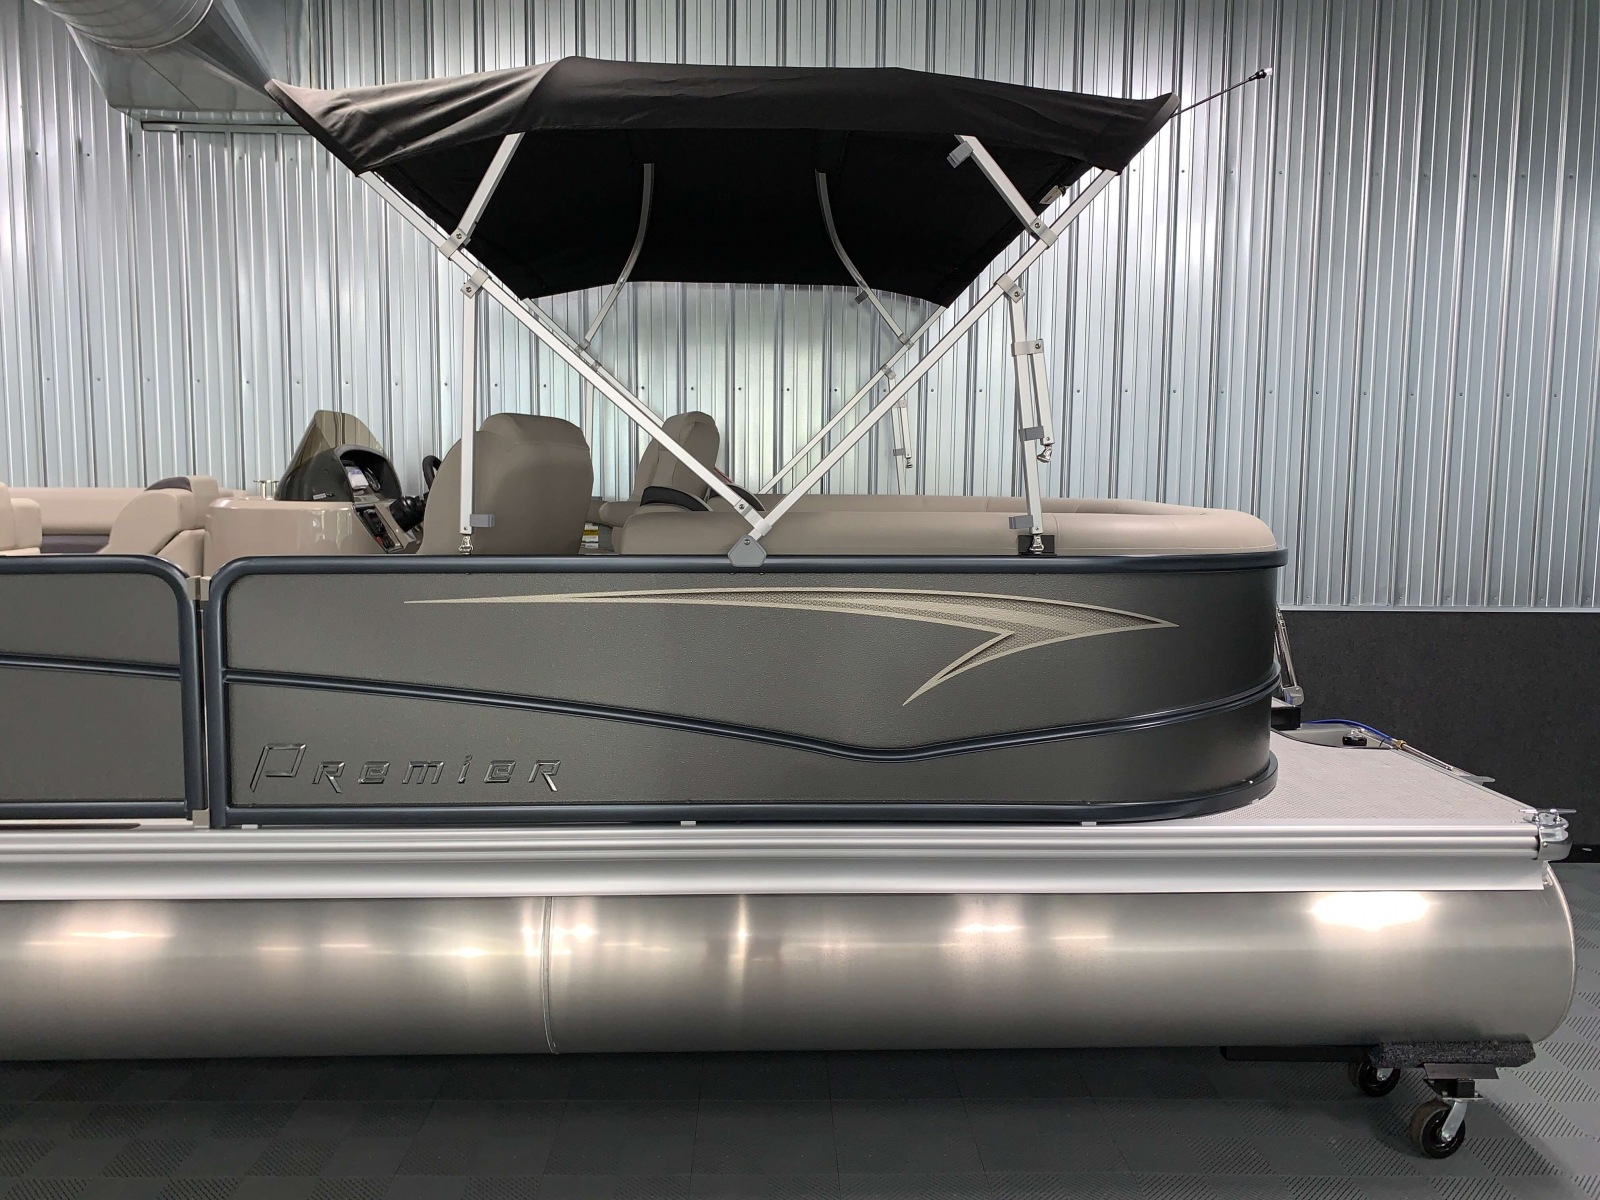 Exterior Design of the 2021 Premier 220 Sunspree RF Pontoon Boat